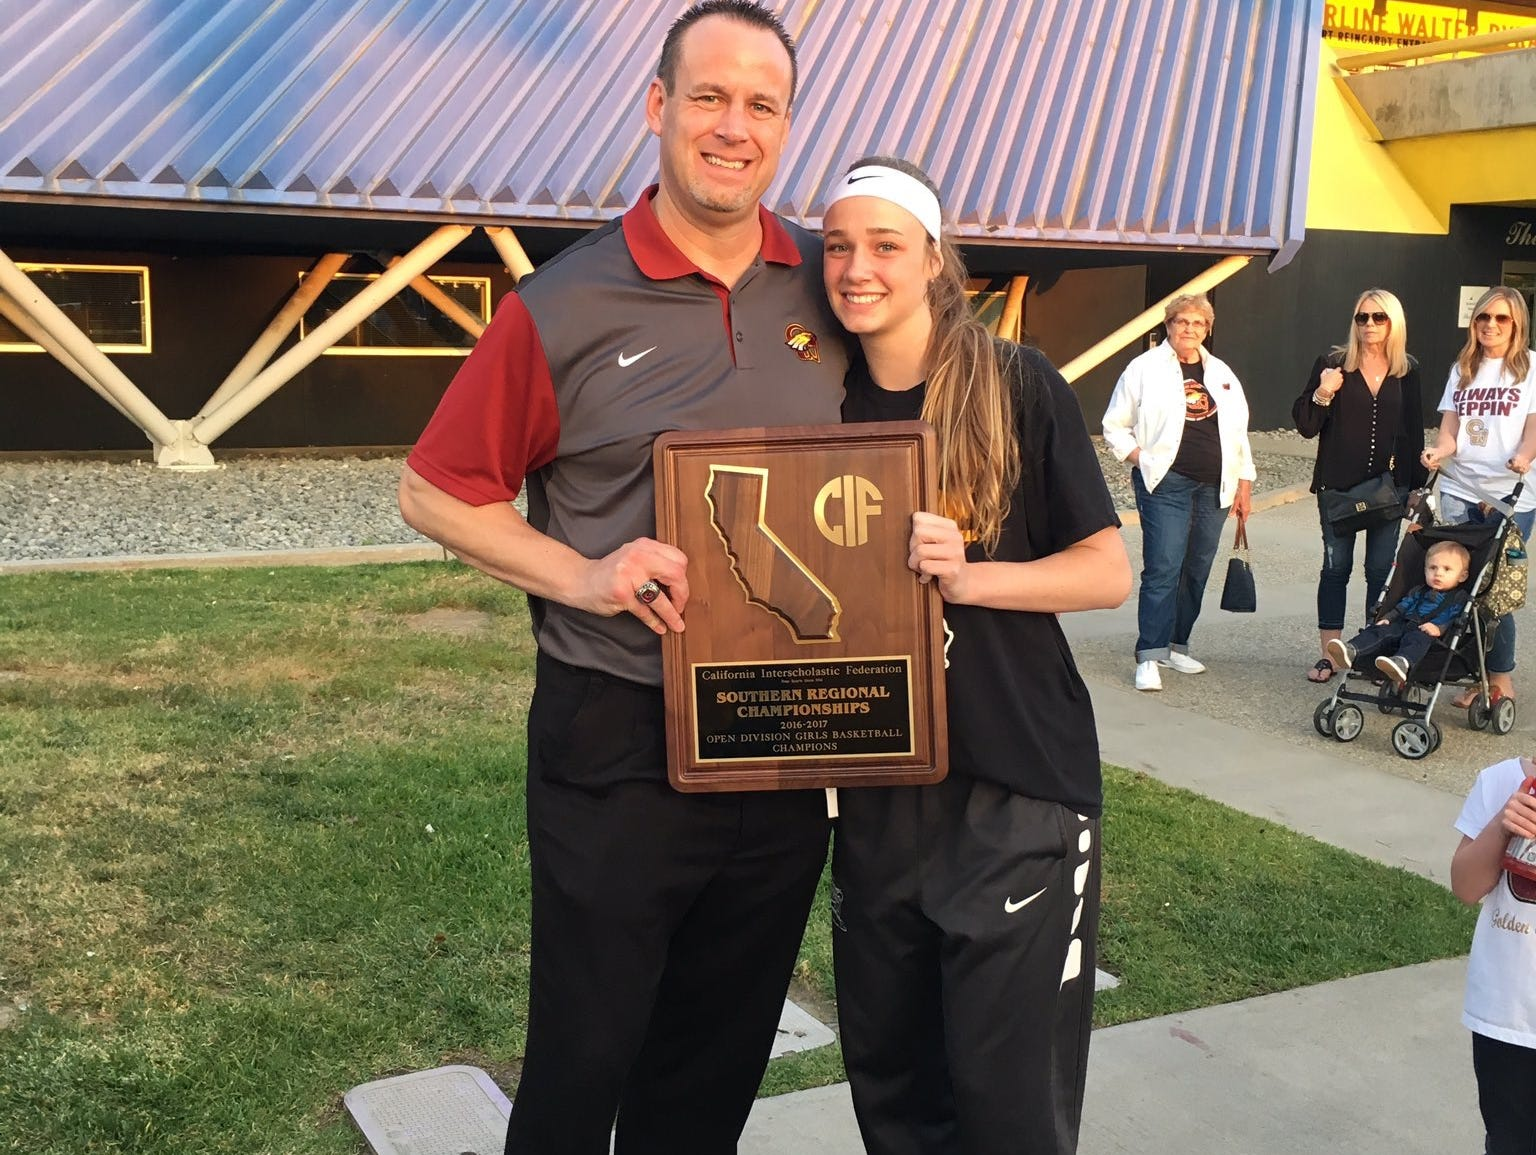 Former Reno coach Craig Campbell, now at Clovis West, is shown with his daughter Madison after winning the Southern California Regional last Saturday.